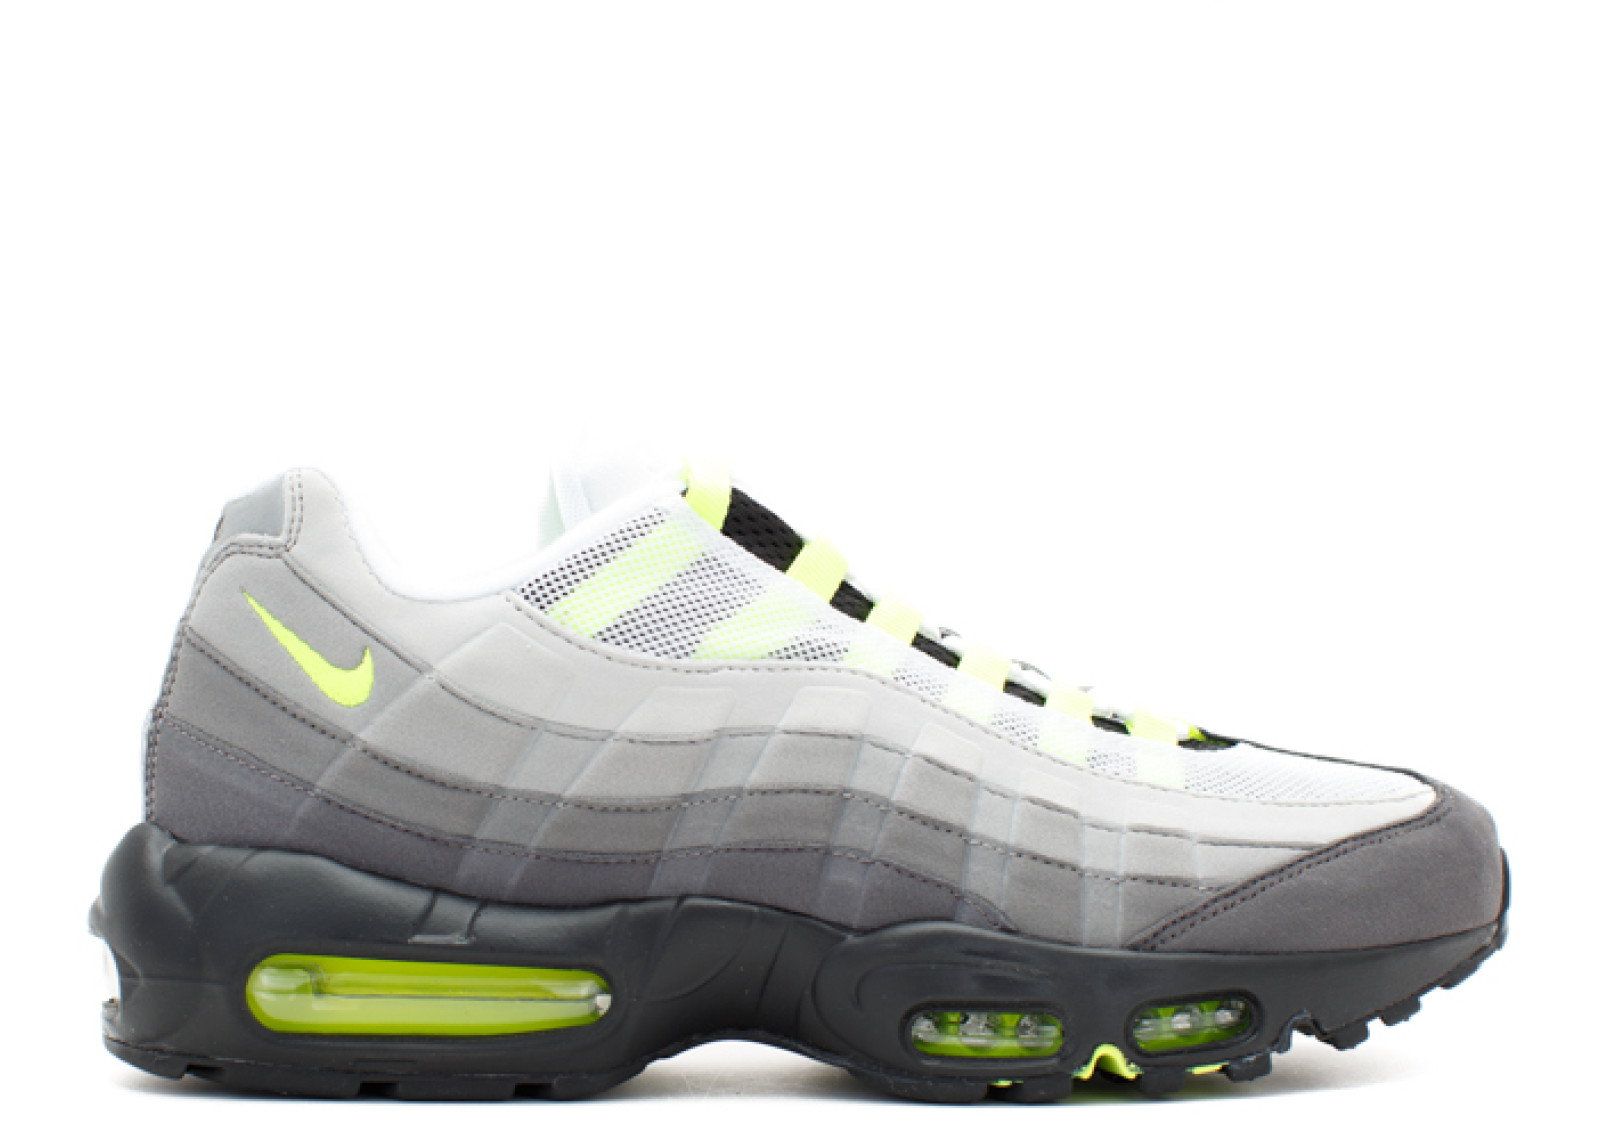 separation shoes ff785 5dbfd Nike Air Max 95 OG Neon (2018) - 0